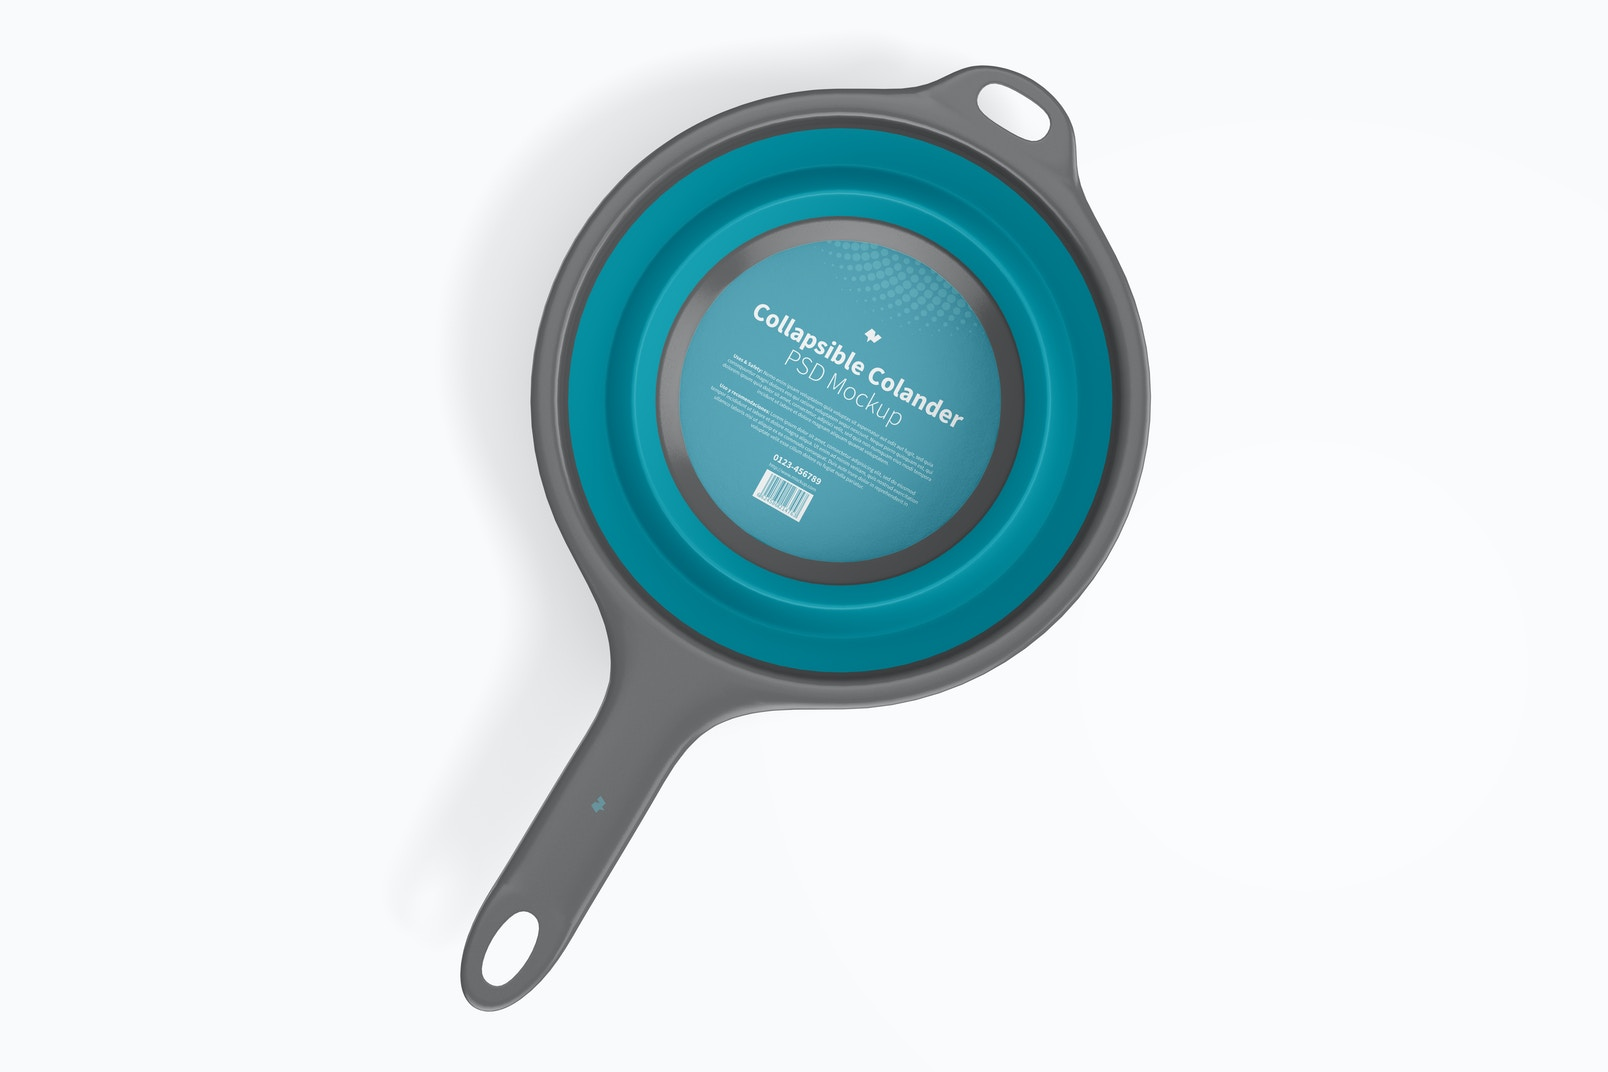 Collapsible Colander Mockup, Top View